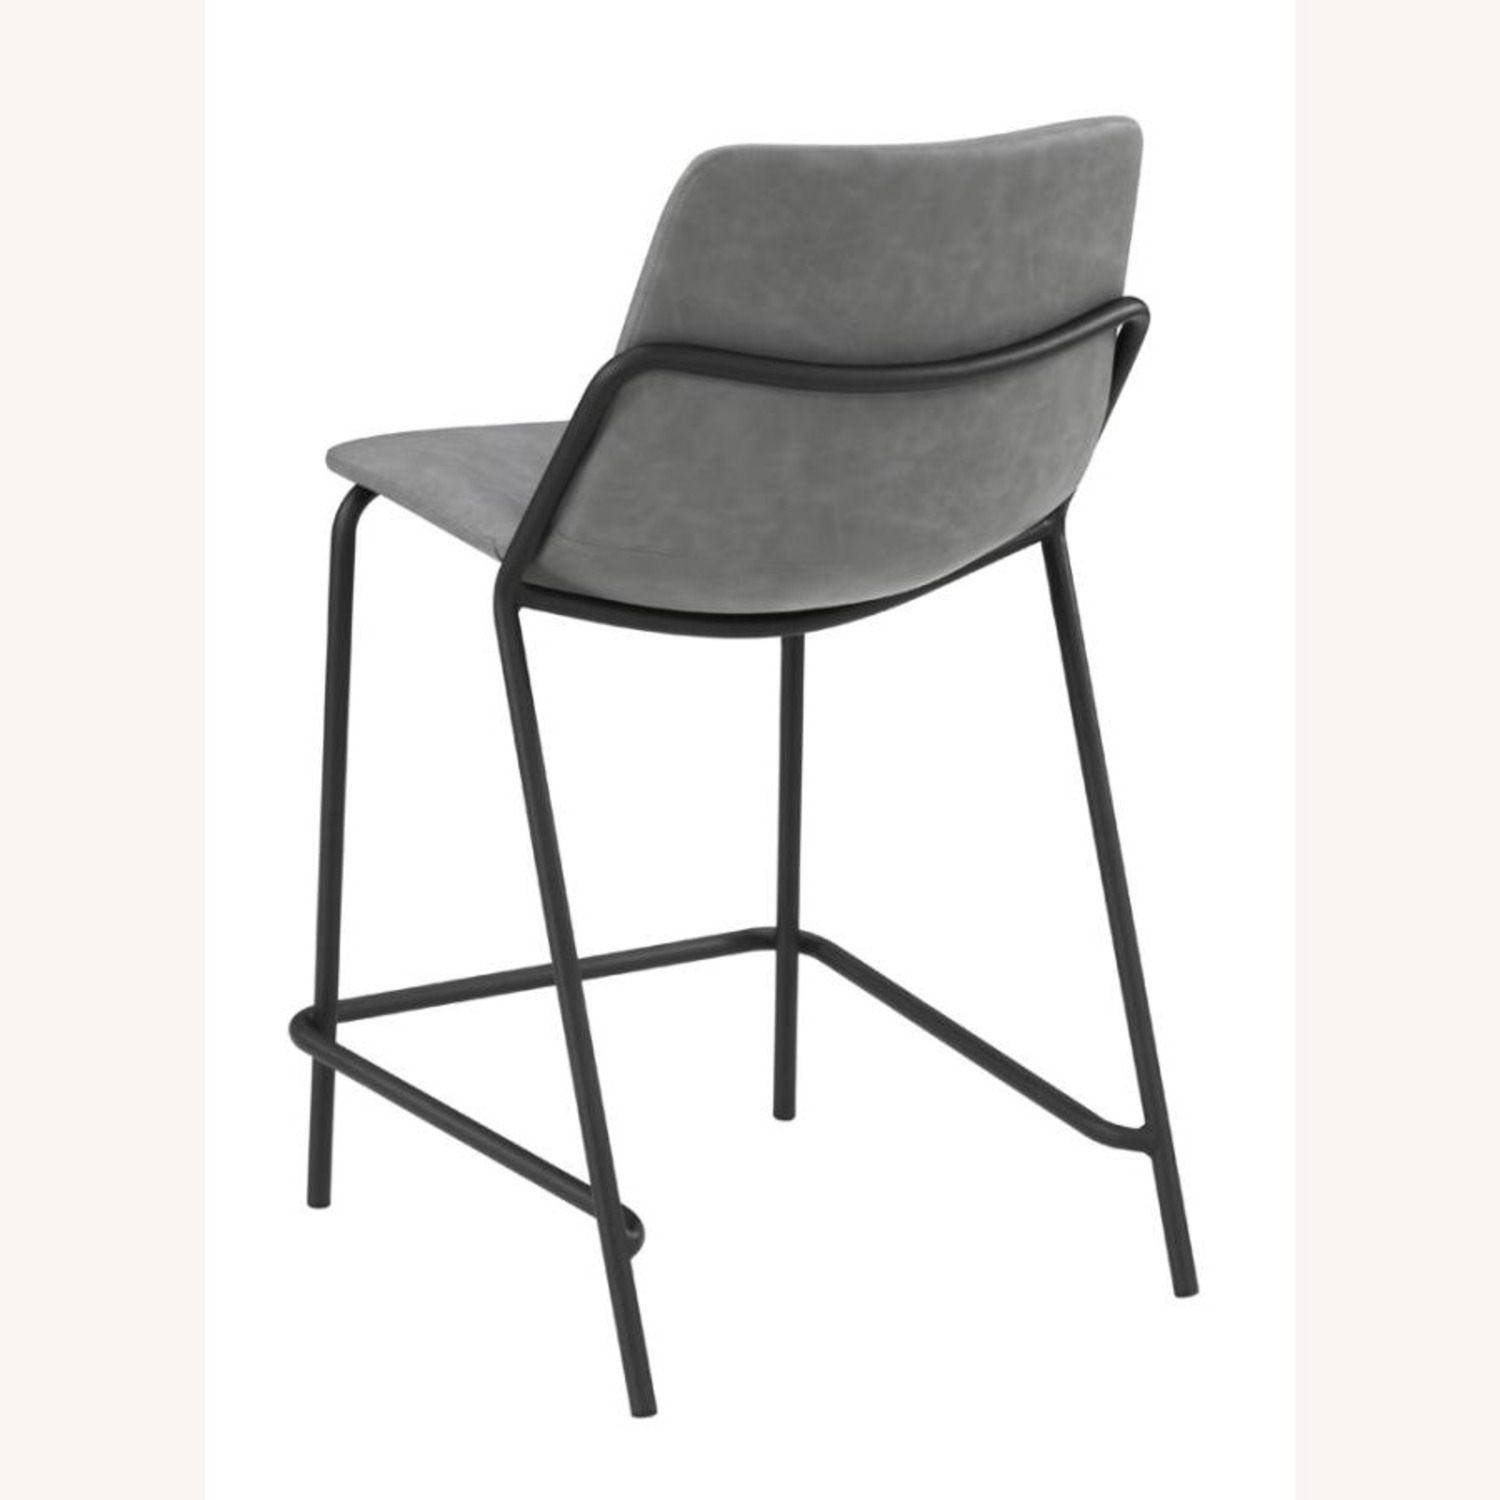 Counter Stool In Grey Leather & Black Metal Finish - image-3